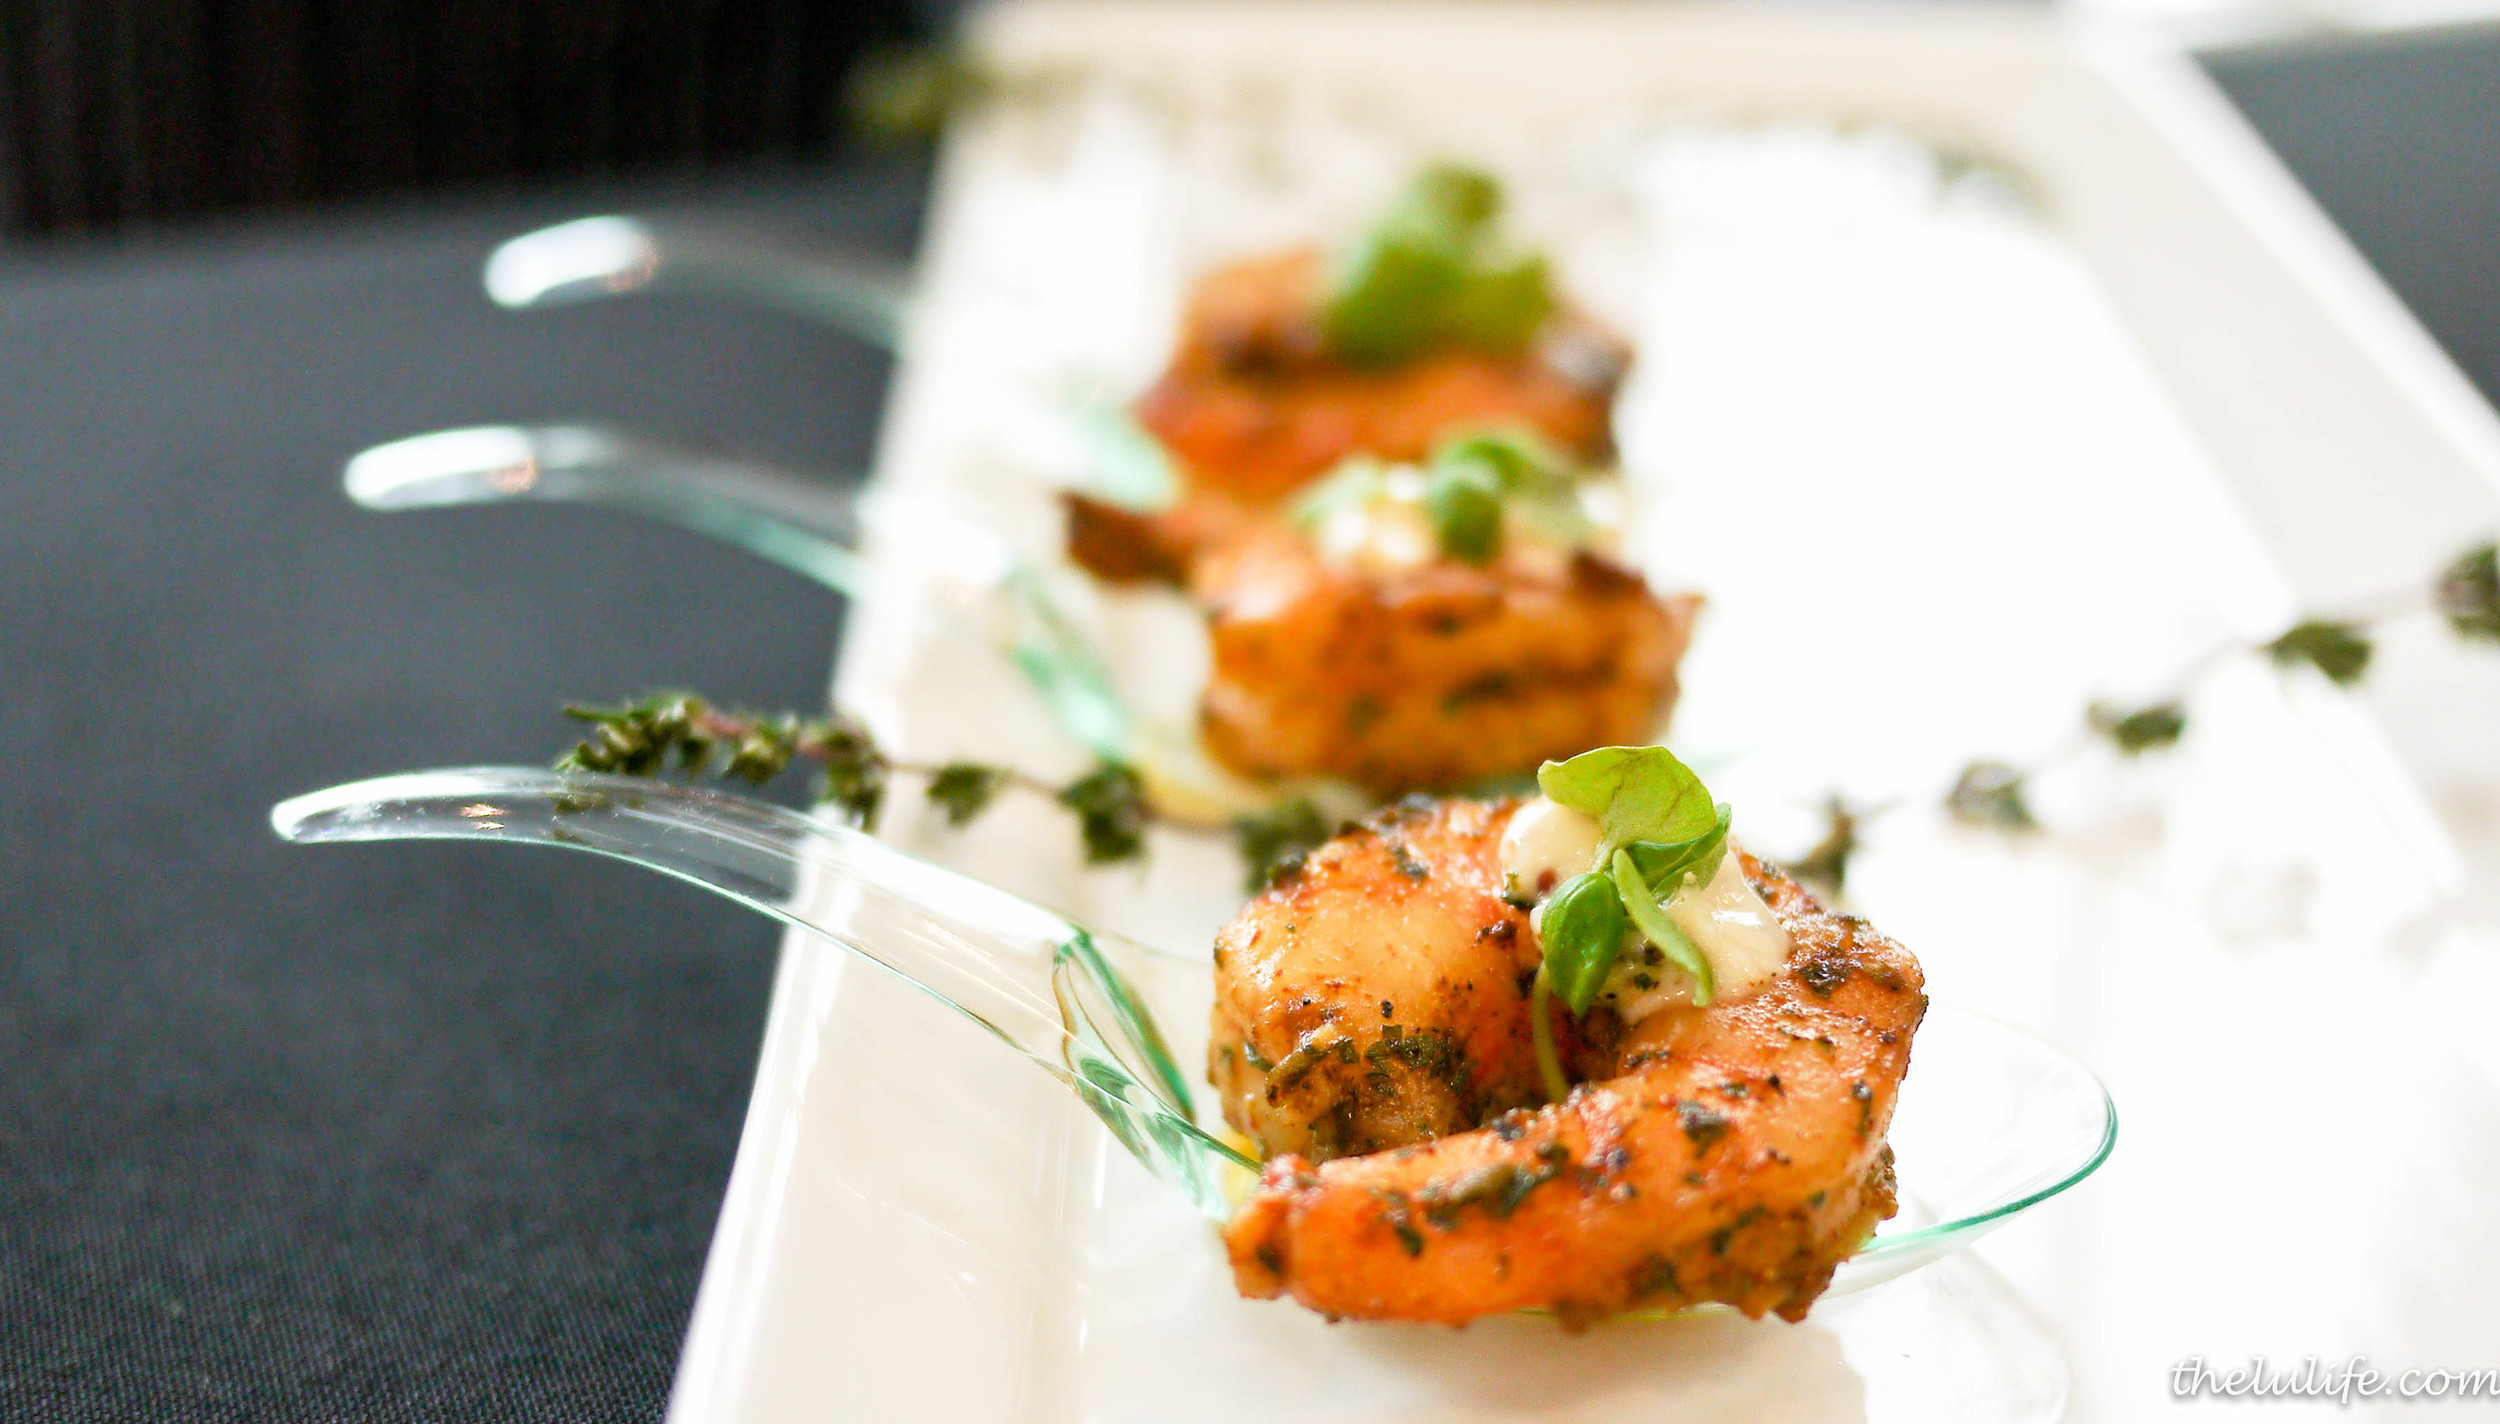 Ancho seared prawns with baby greens and mustard aioli